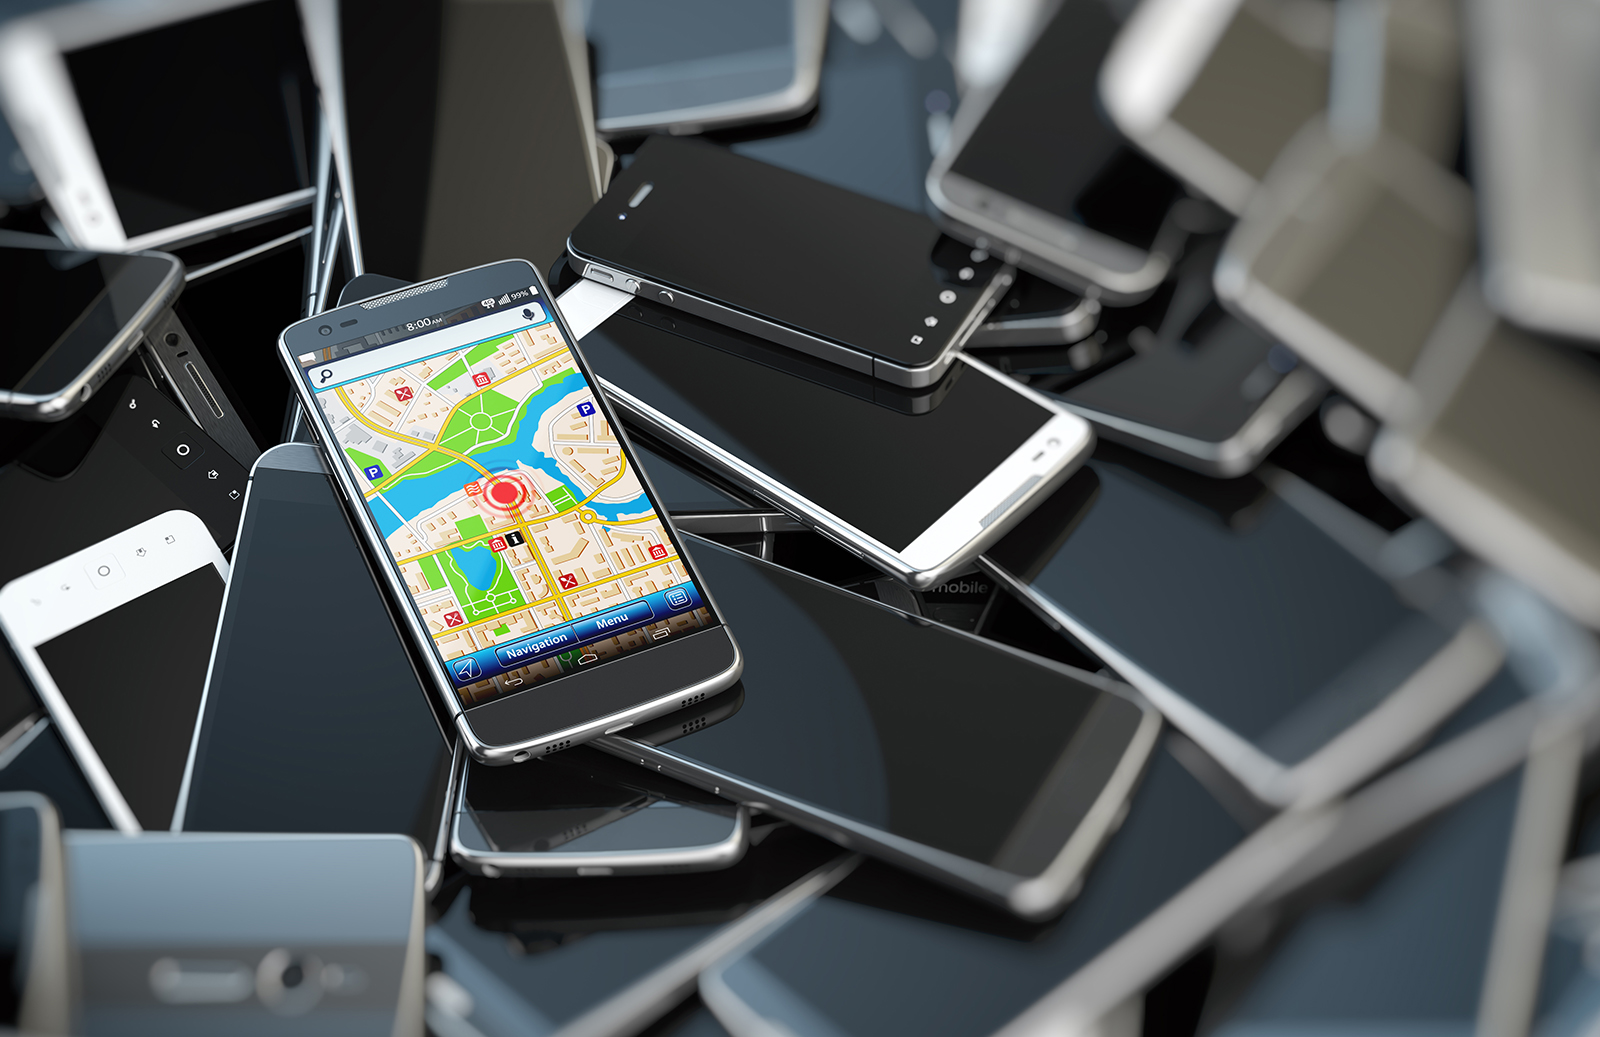 recycling-mobile-phones-1600